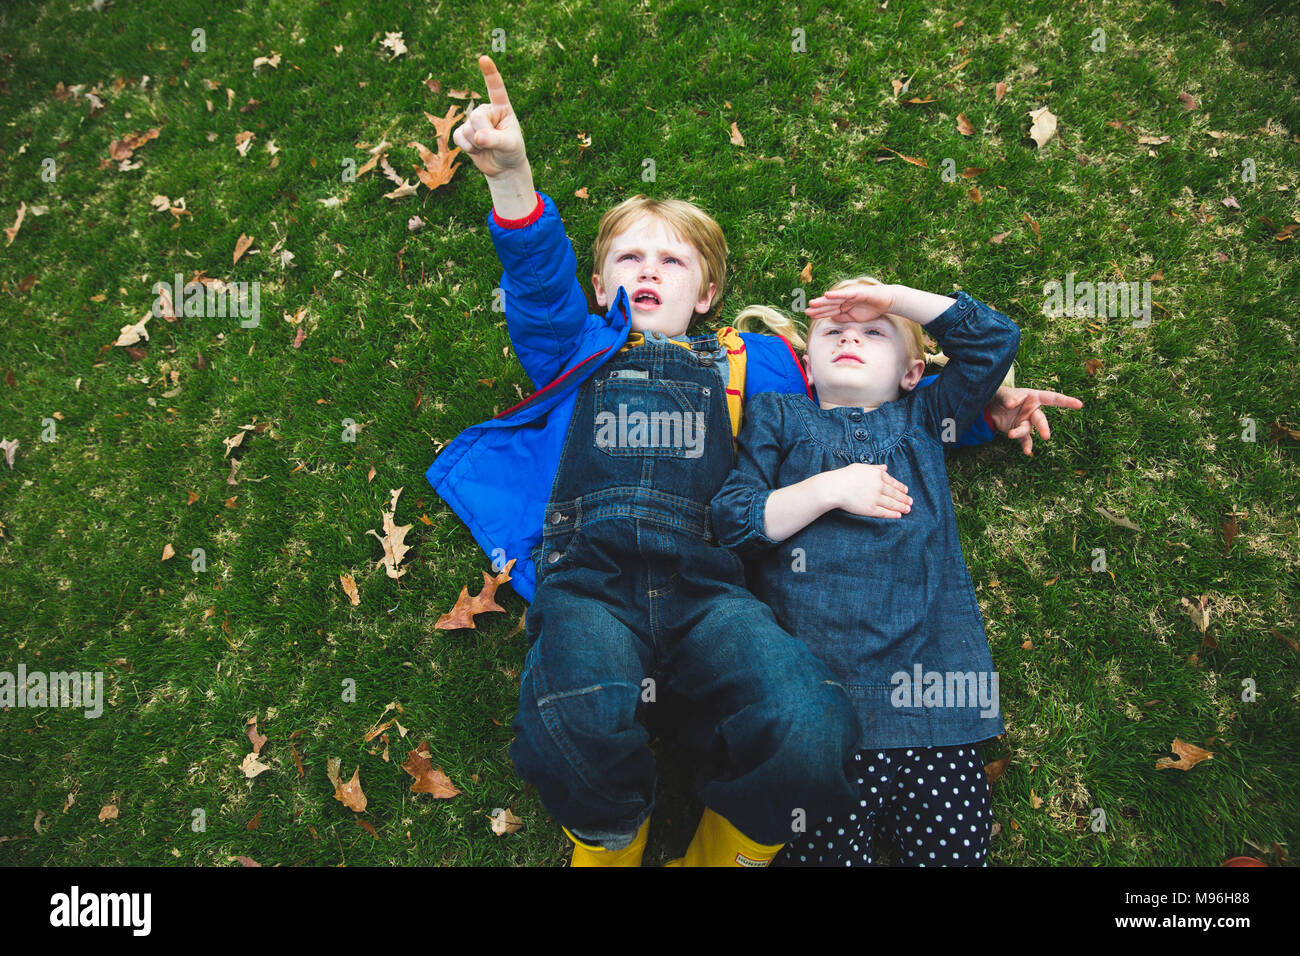 Children laying down on grass - Stock Image